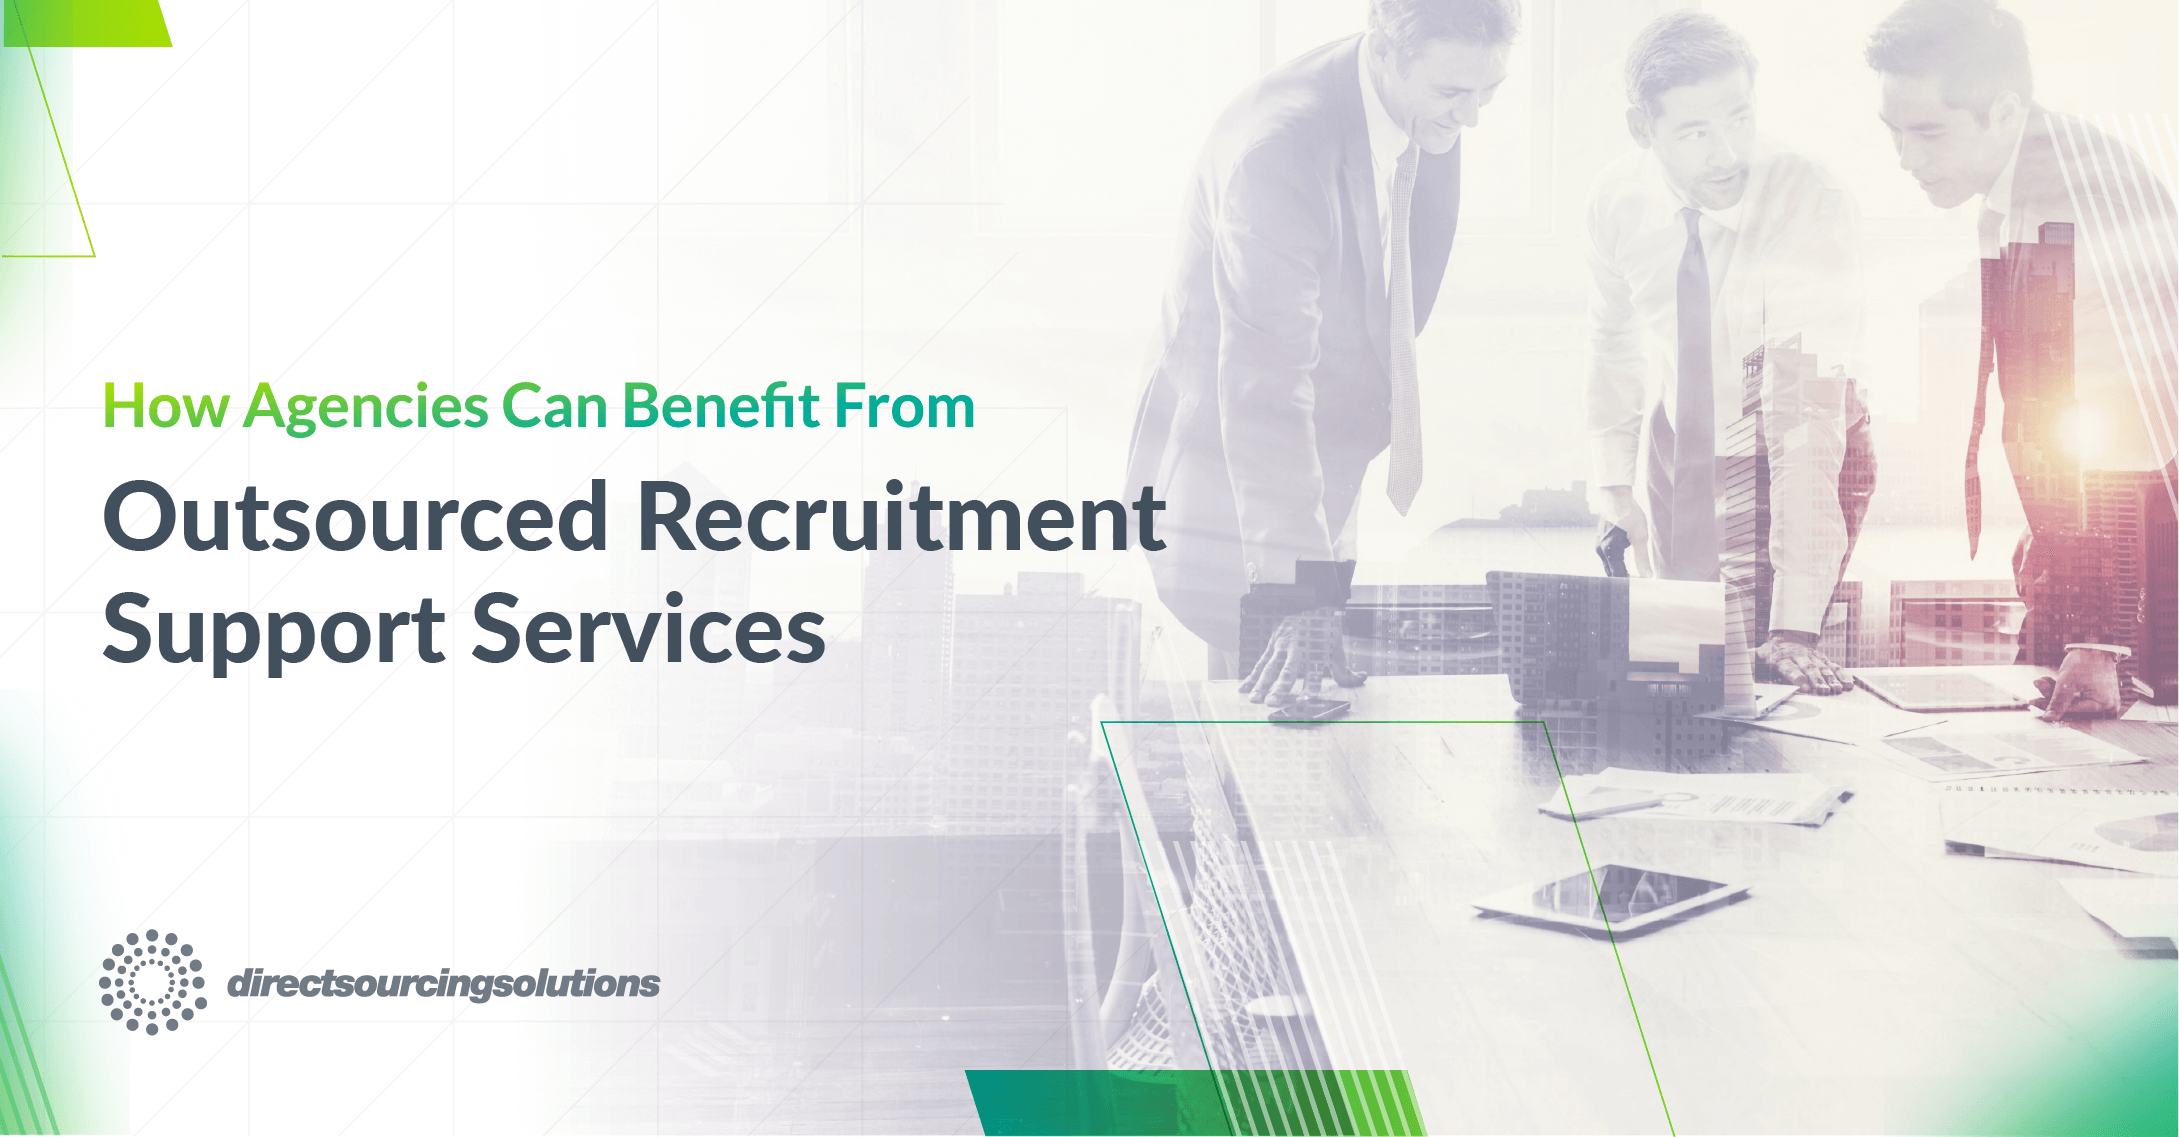 How agencies can benefit from outsourced recruitment support services